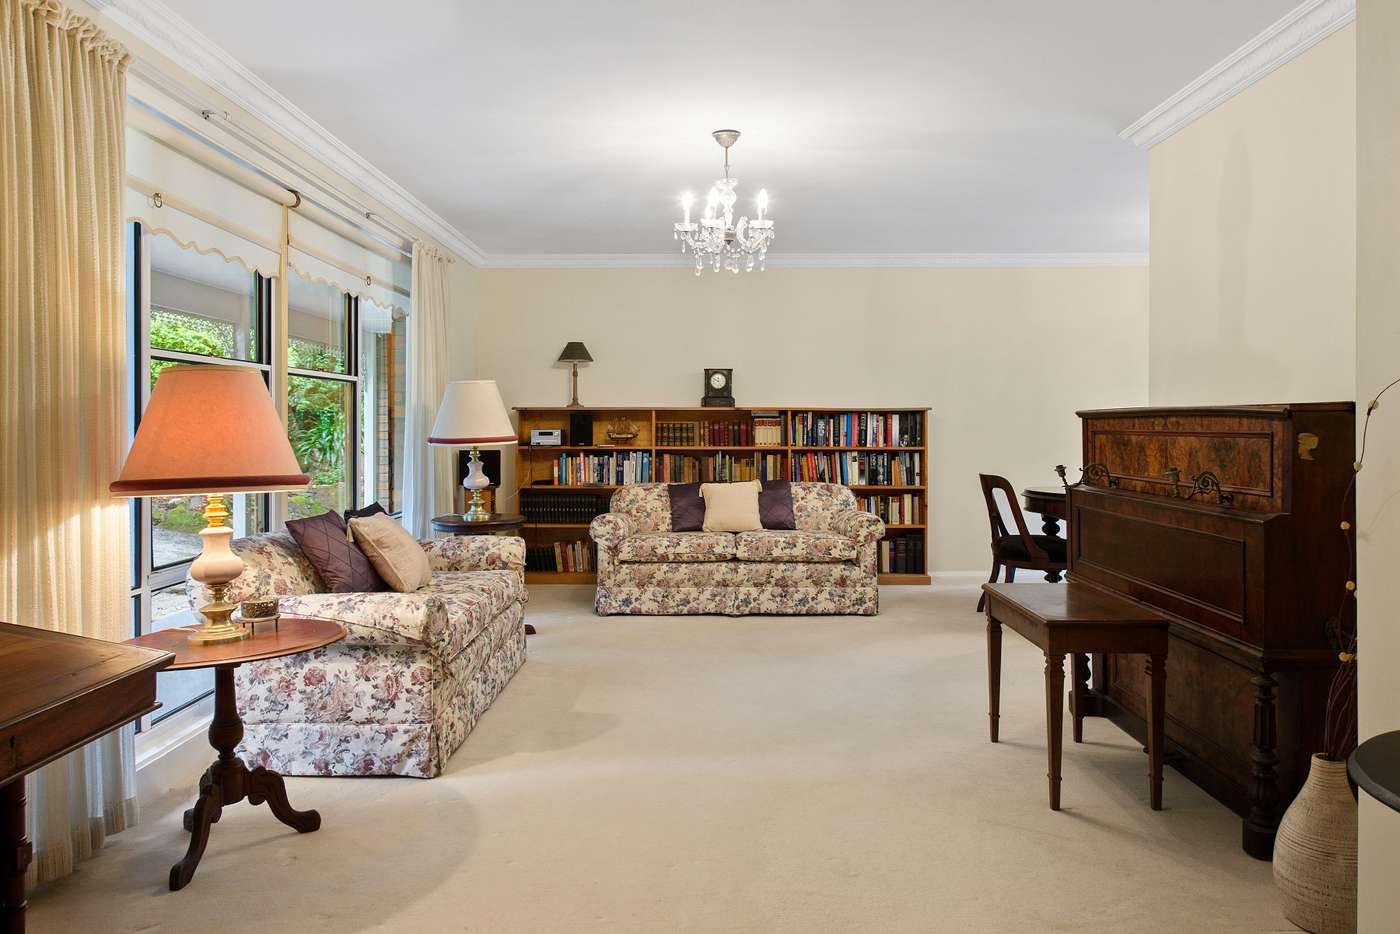 Fifth view of Homely house listing, 34 Russell Crescent, Westleigh NSW 2120